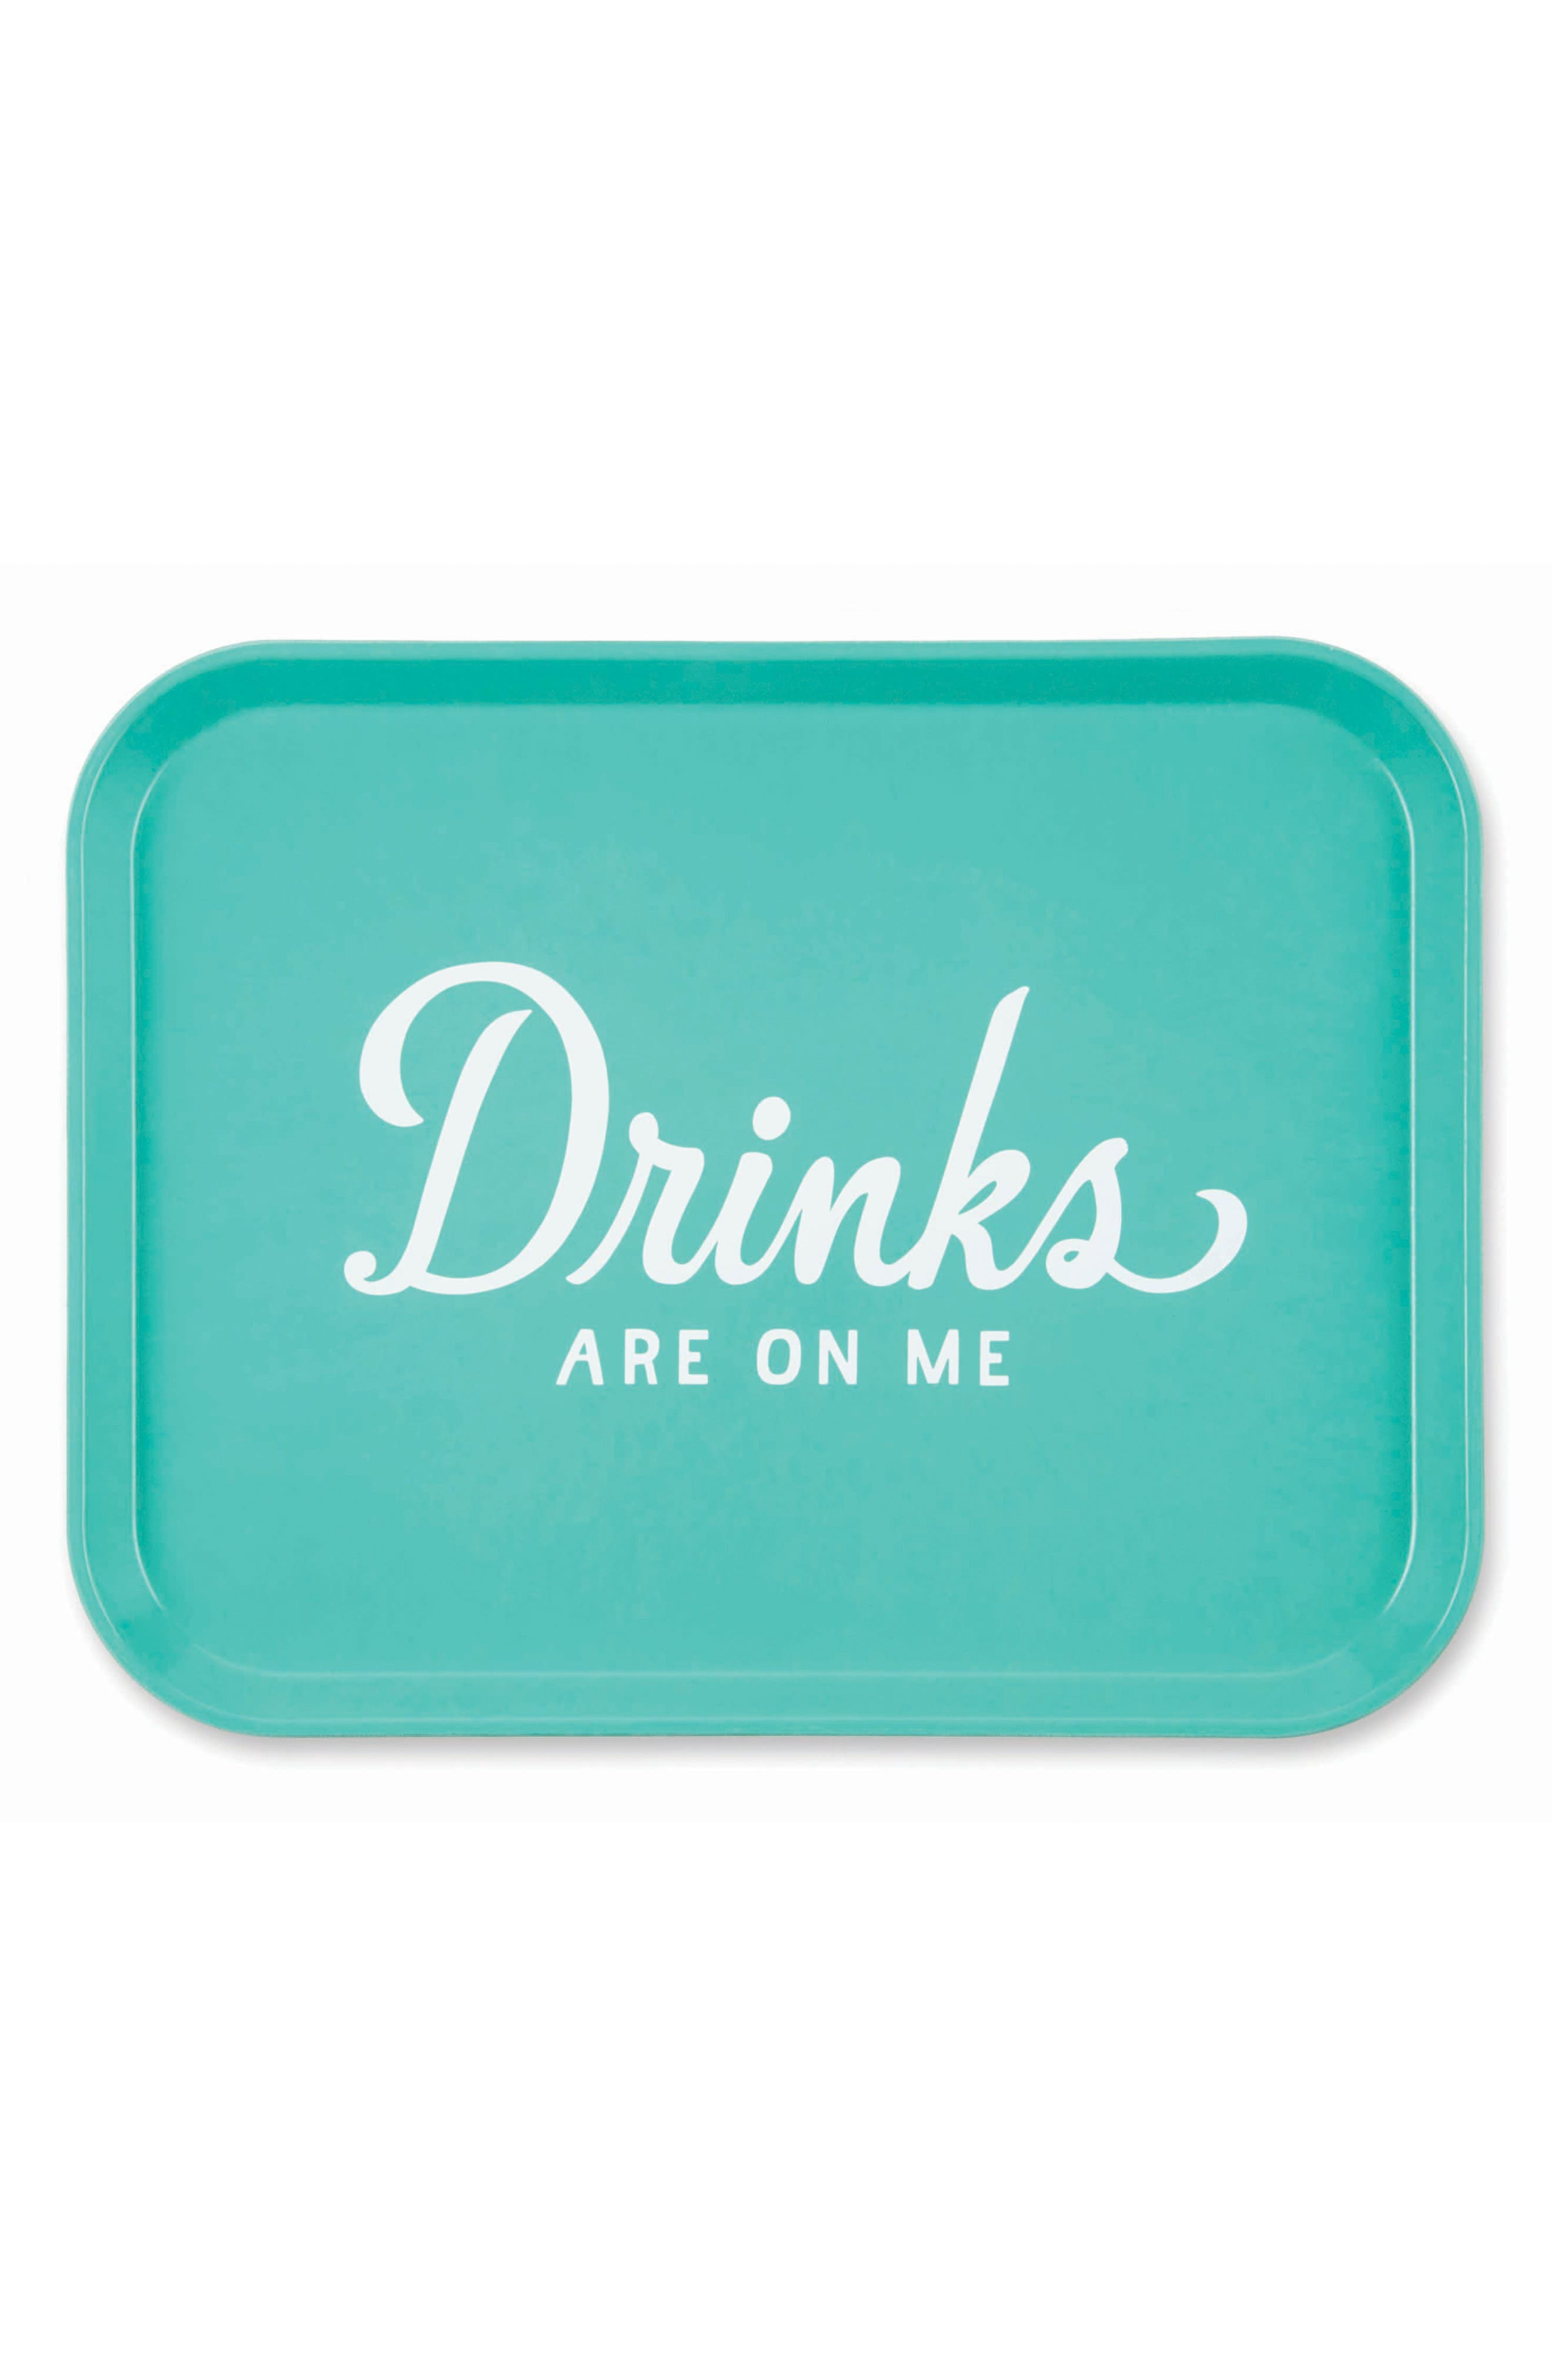 Drinks Are on Me Tray,                         Main,                         color, 440